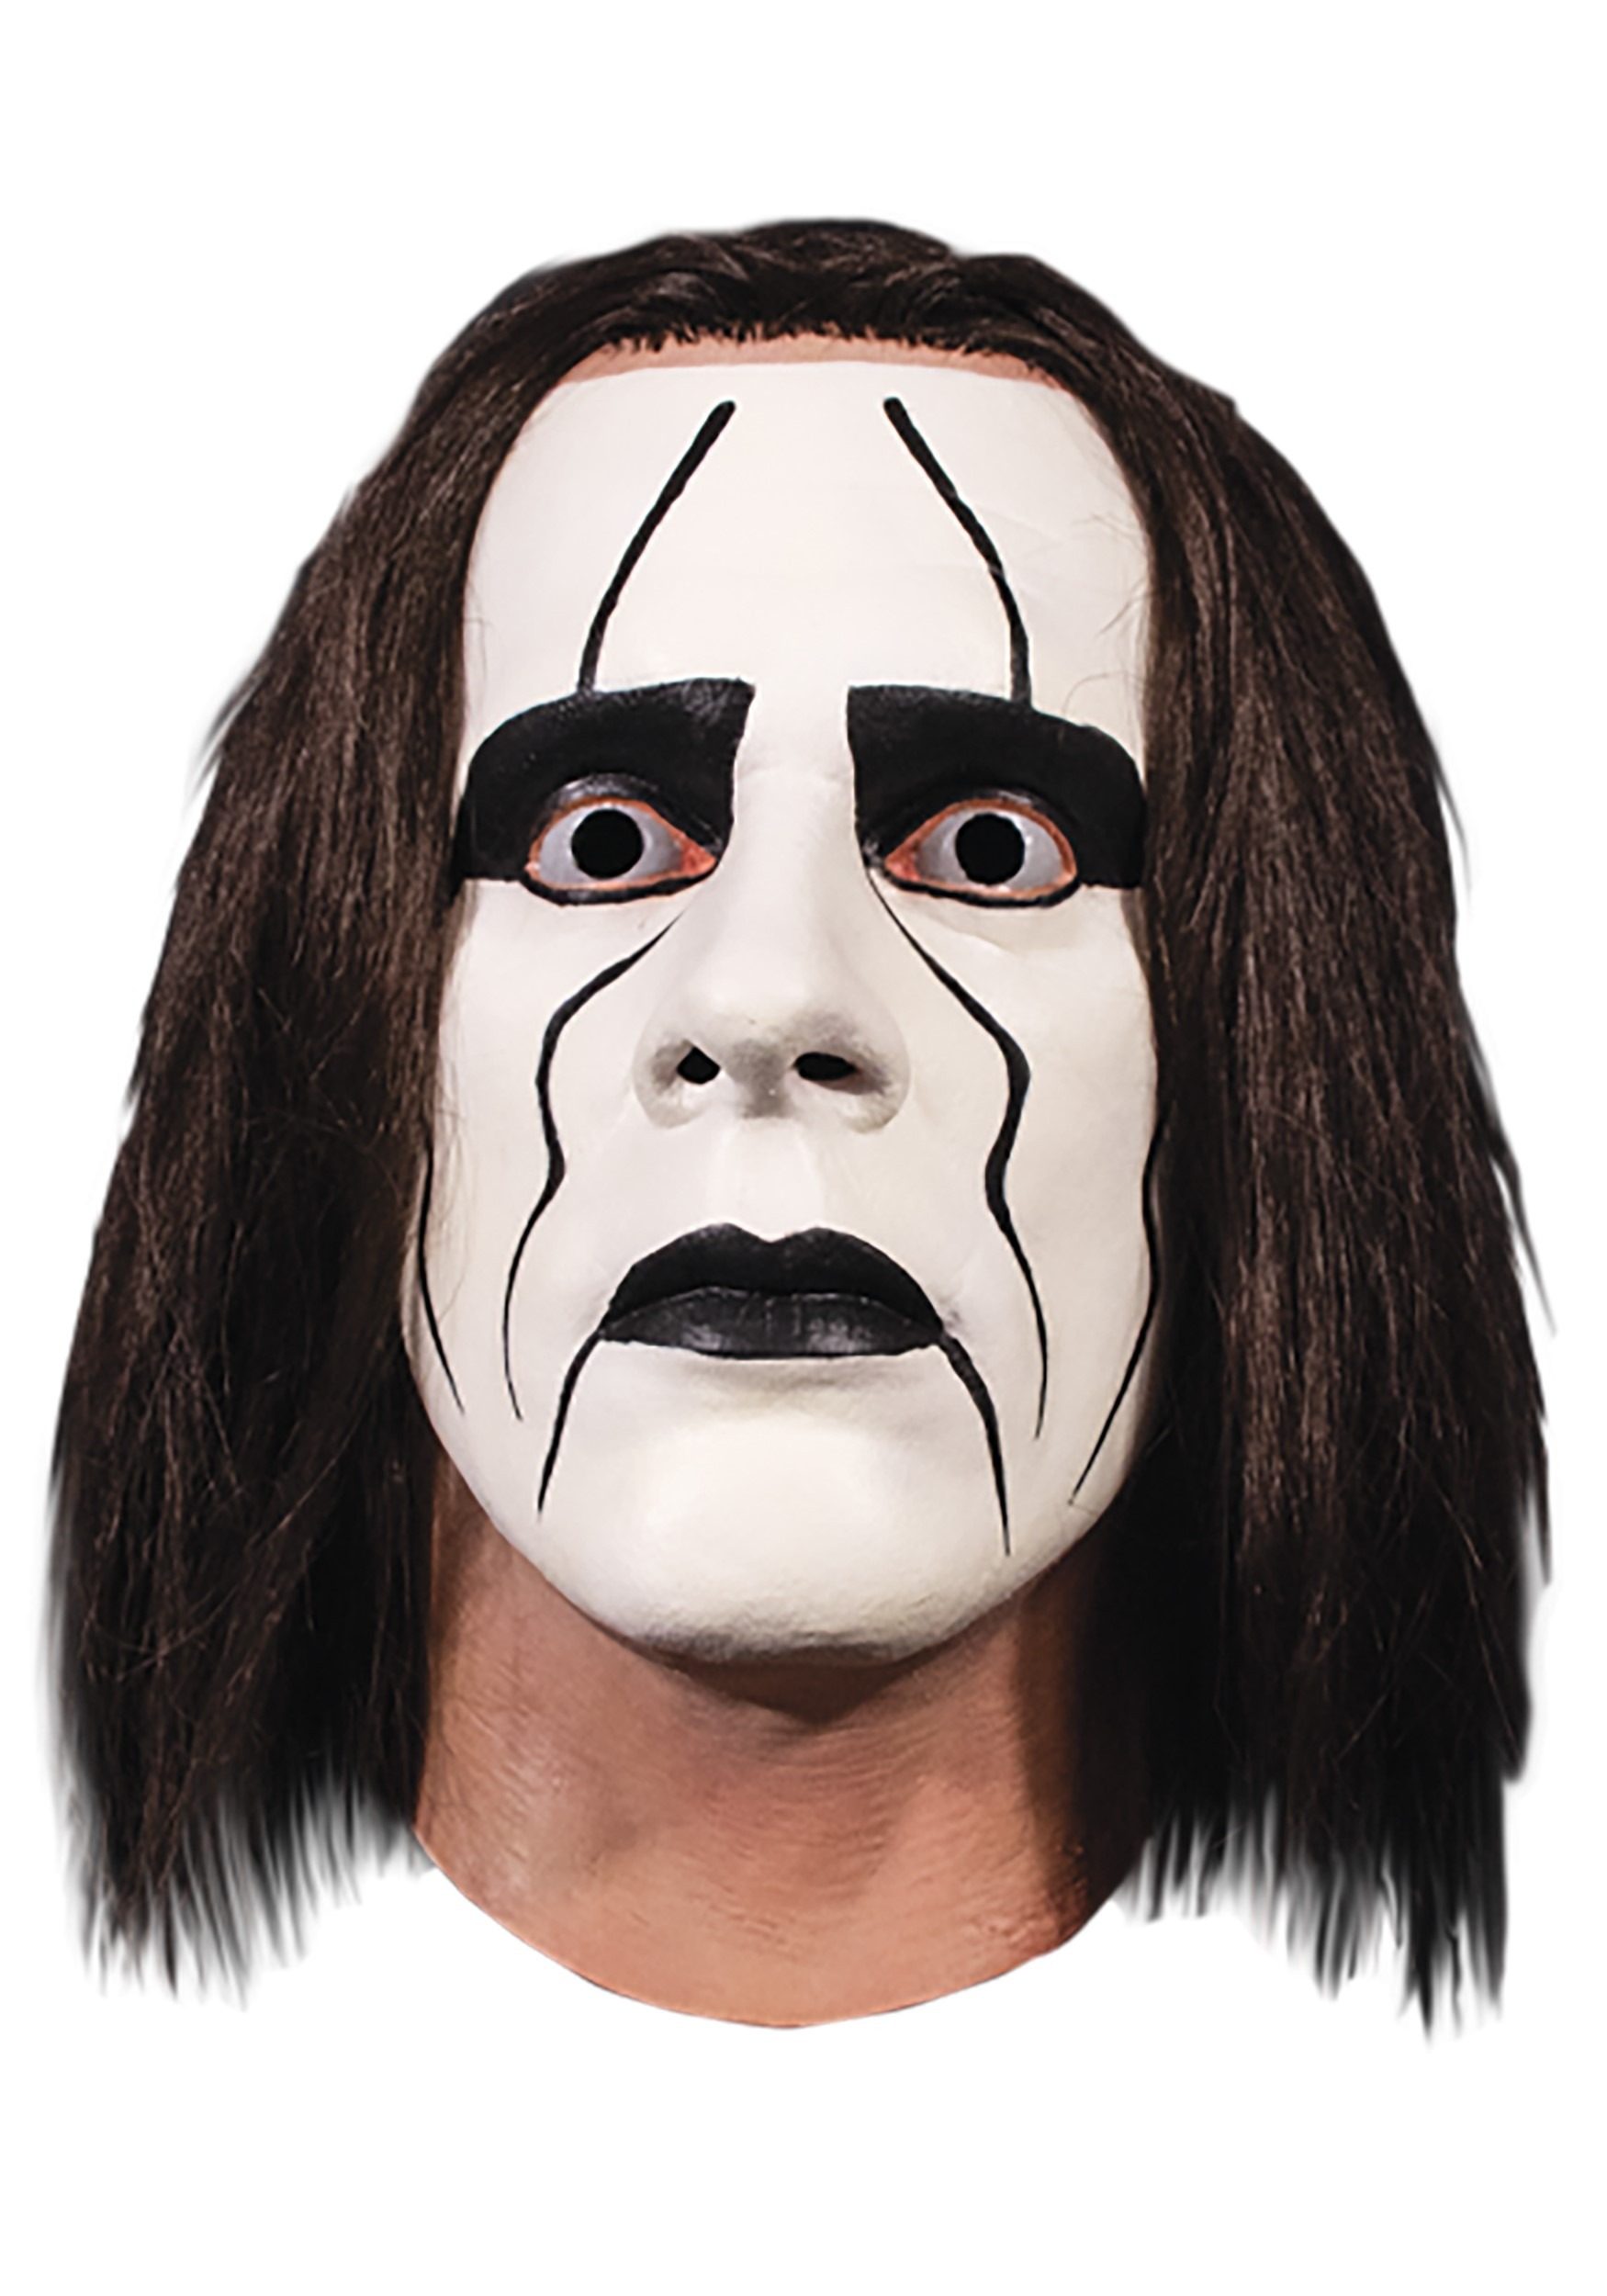 Sting Face Paint : sting, paint, Sting, Wrestling